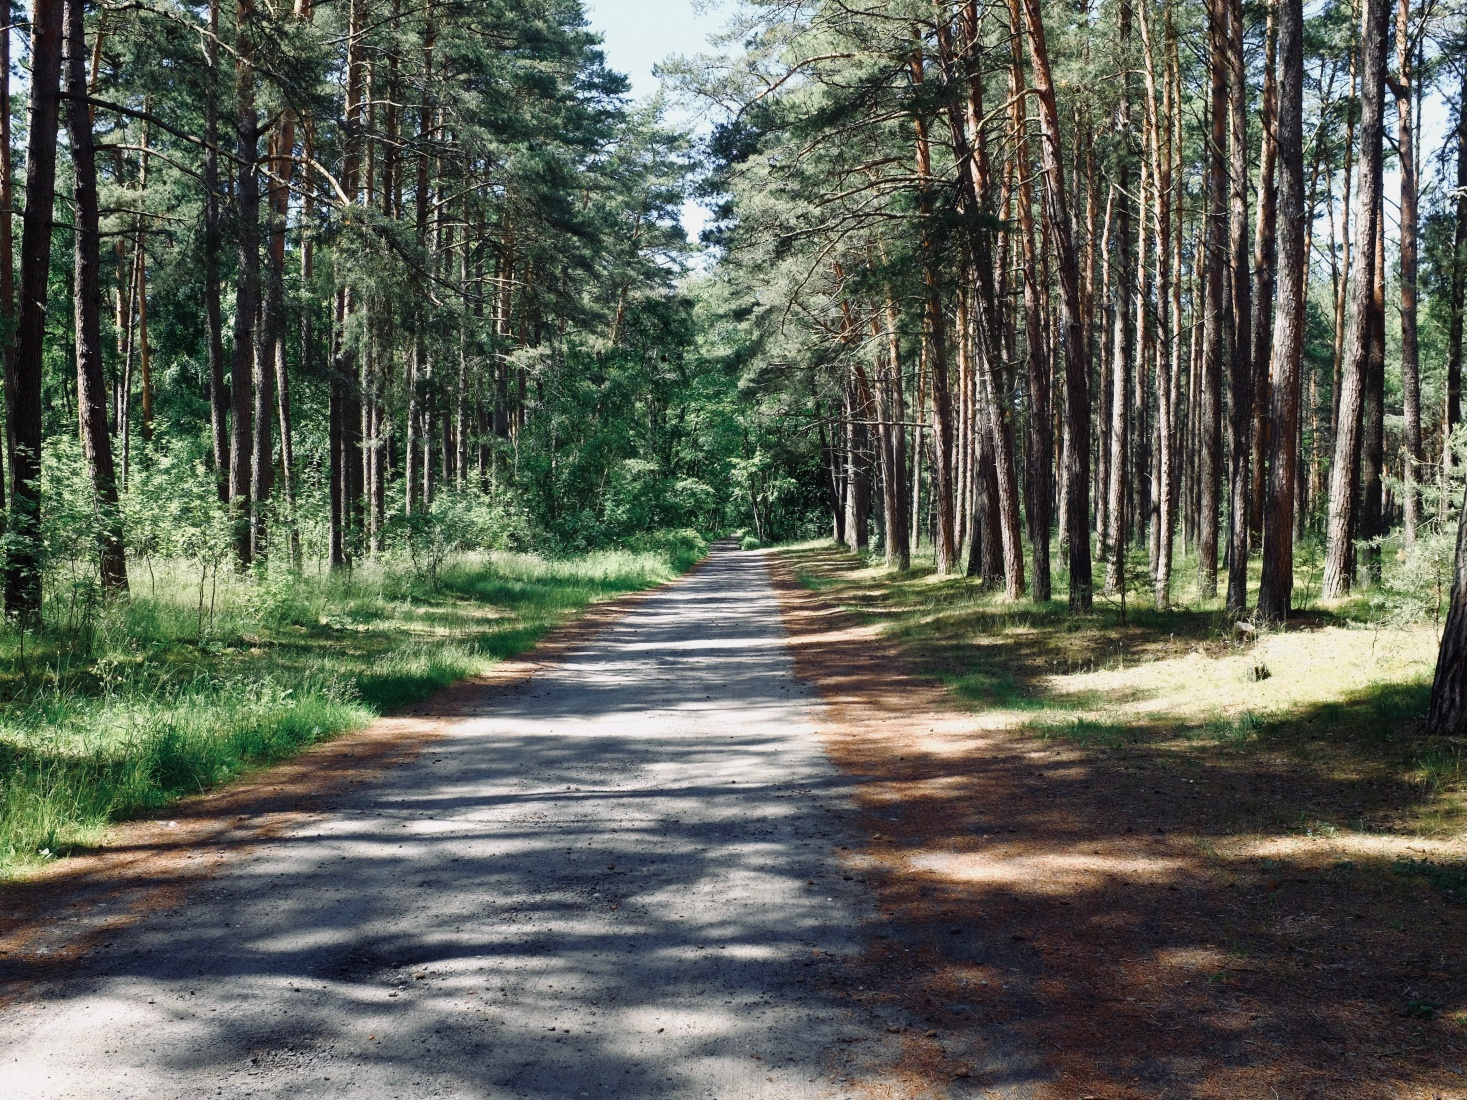 A white sand road through pine forests, the Curonian Spit, north from Kaliningrad, Russia.